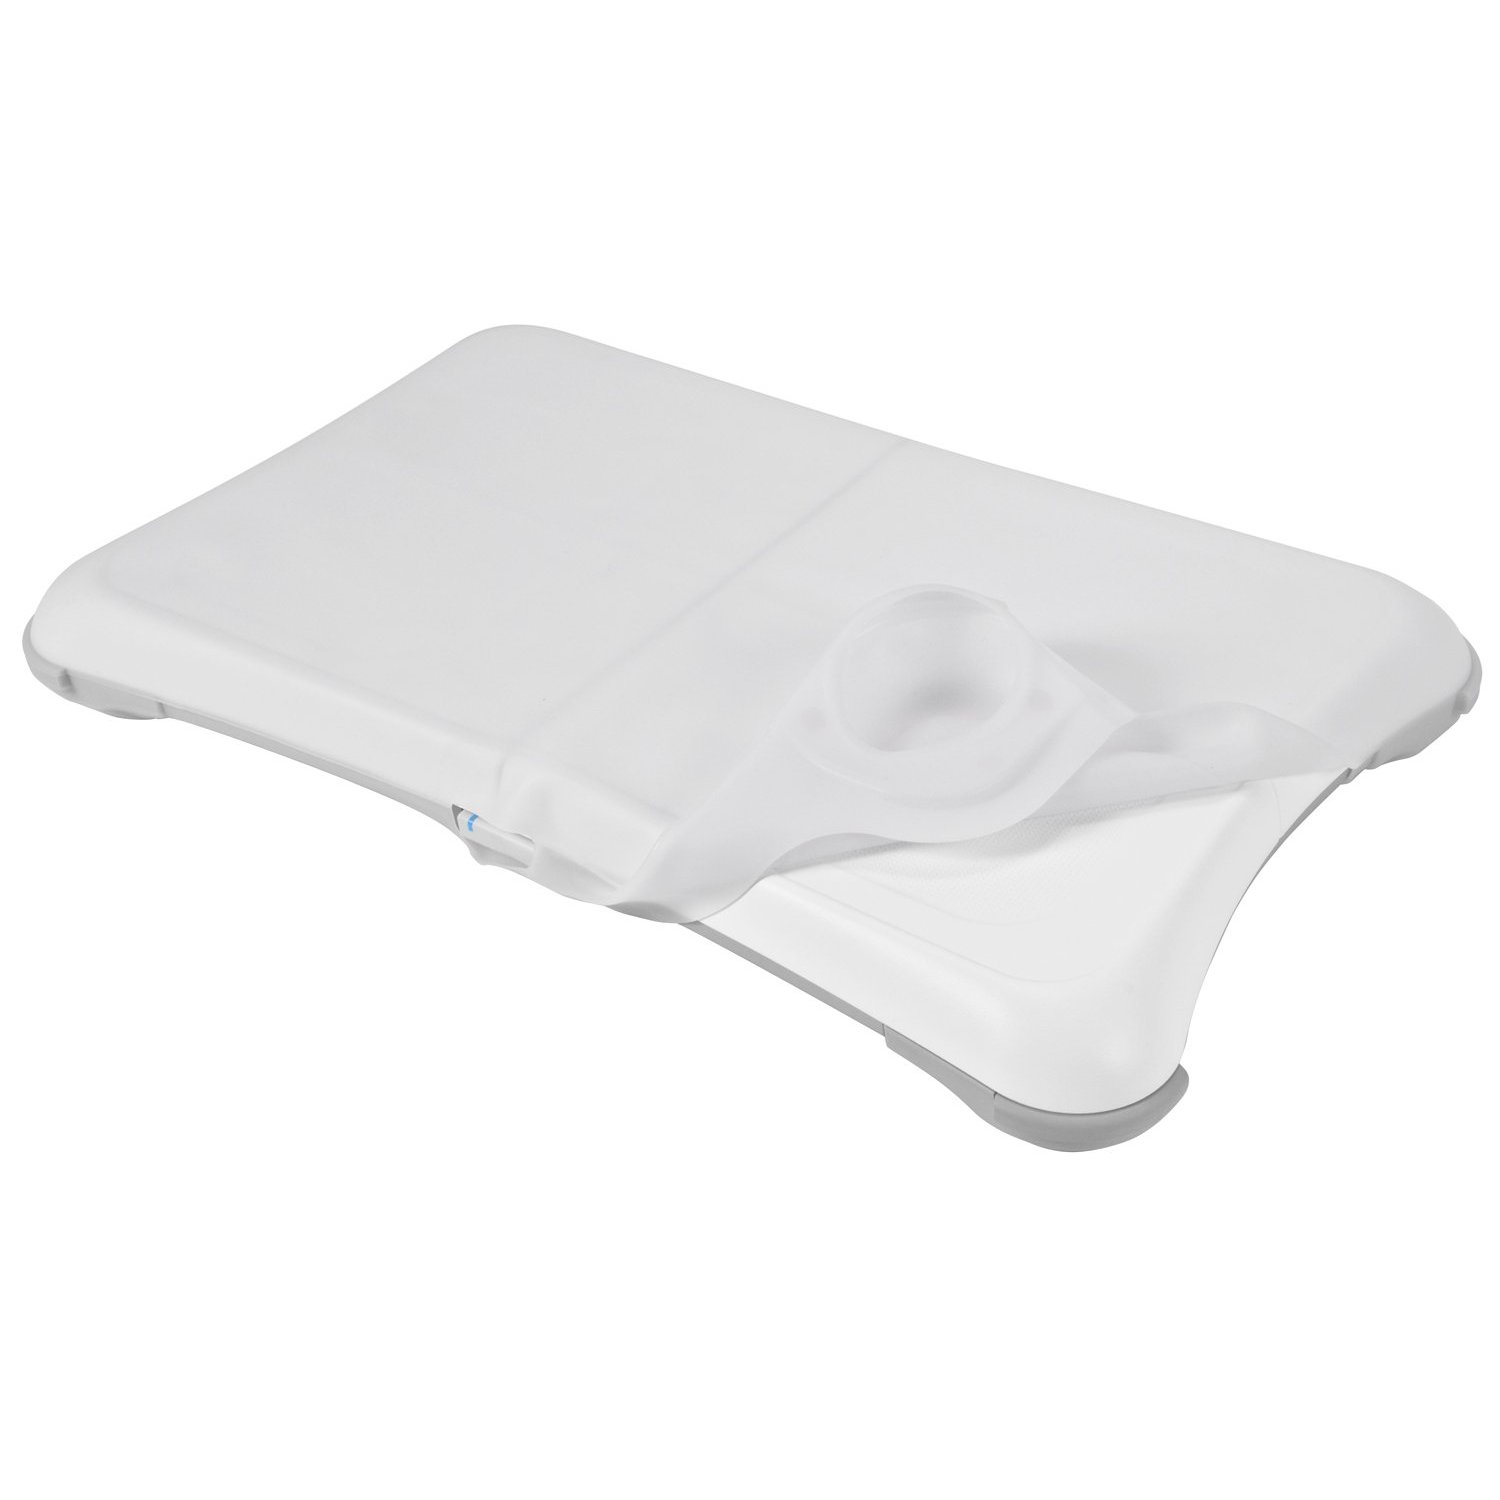 Wii Fit Balance Board Silicone Sleeve